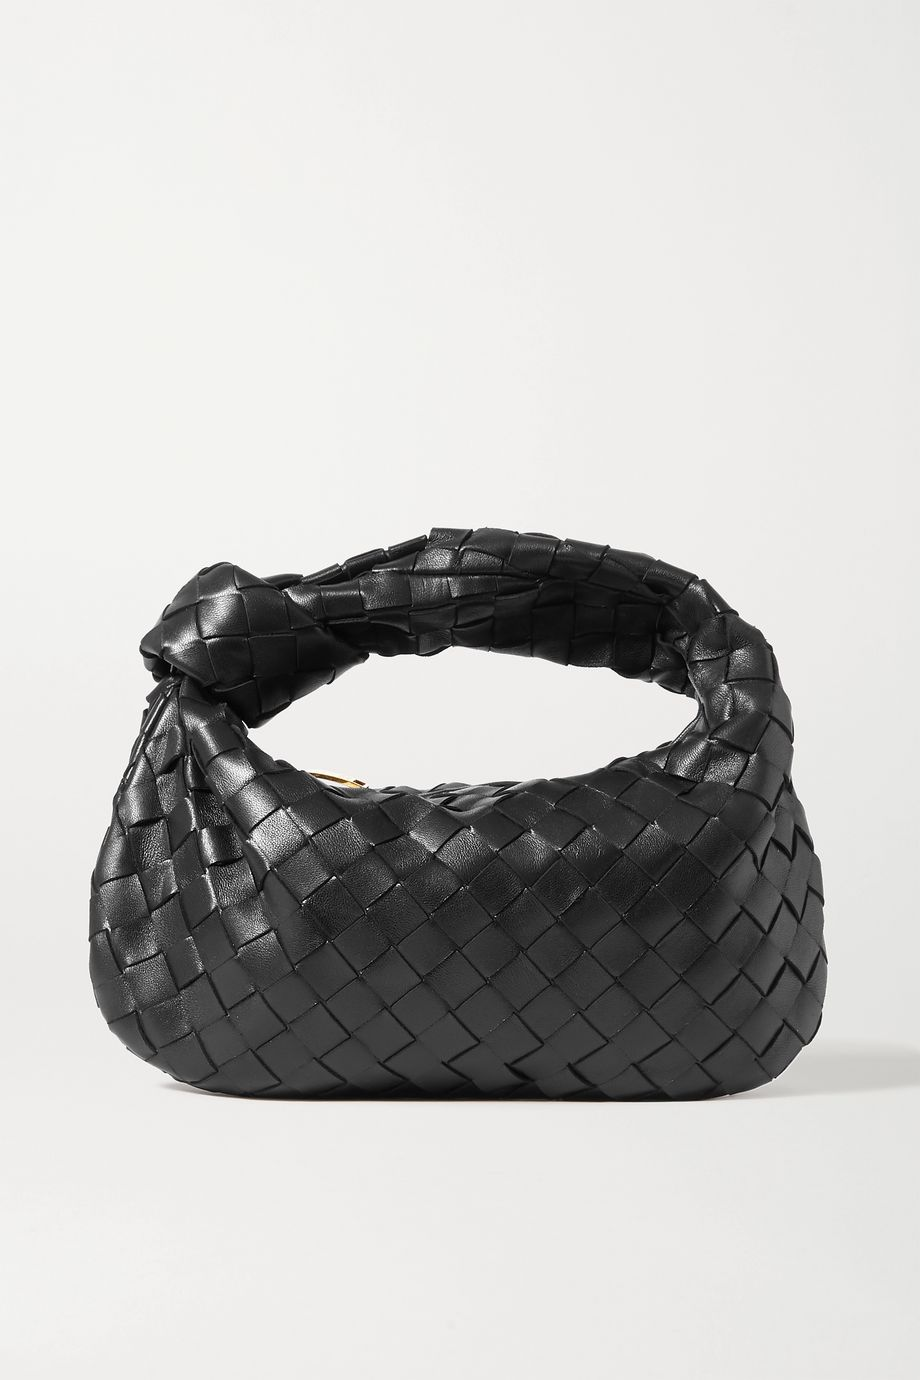 Bottega Veneta Jodie mini knotted intrecciato textured-leather tote